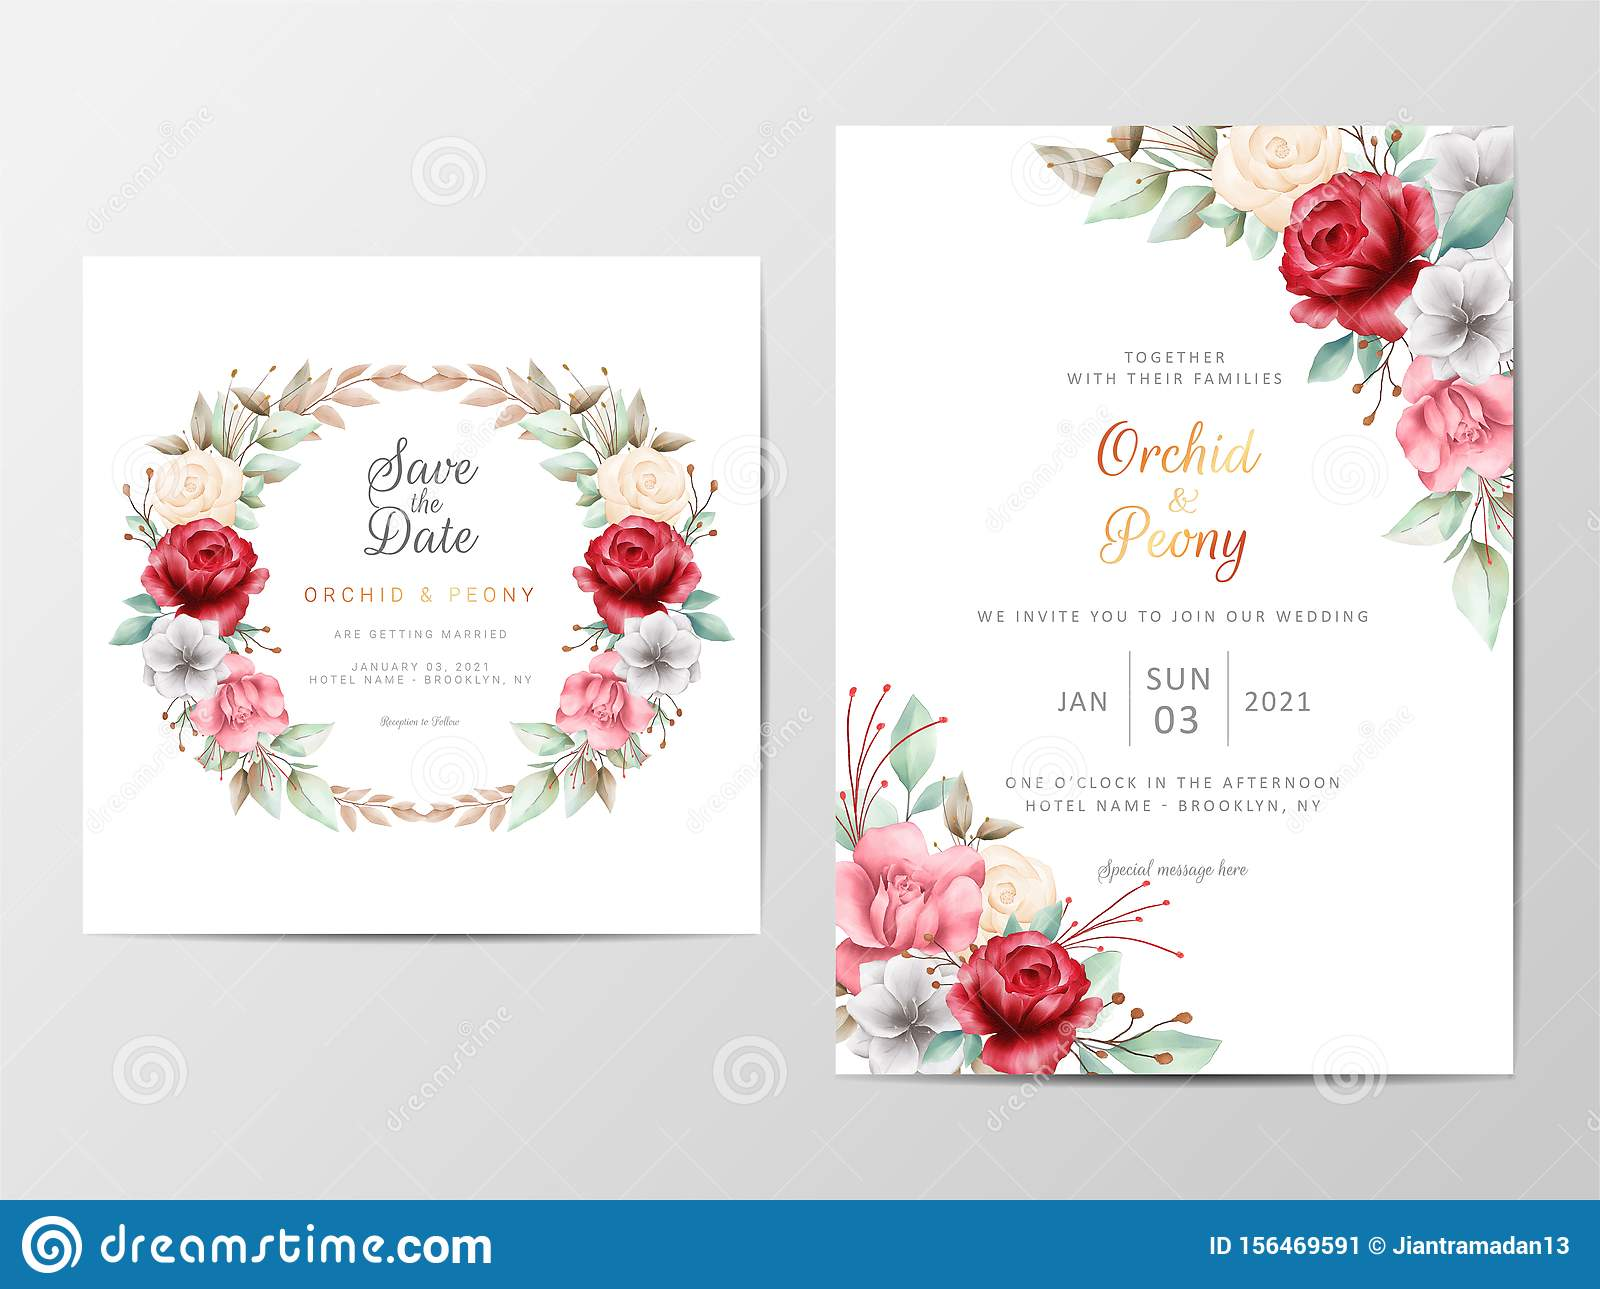 Foliage Wedding Invitation Cards Template With Watercolor